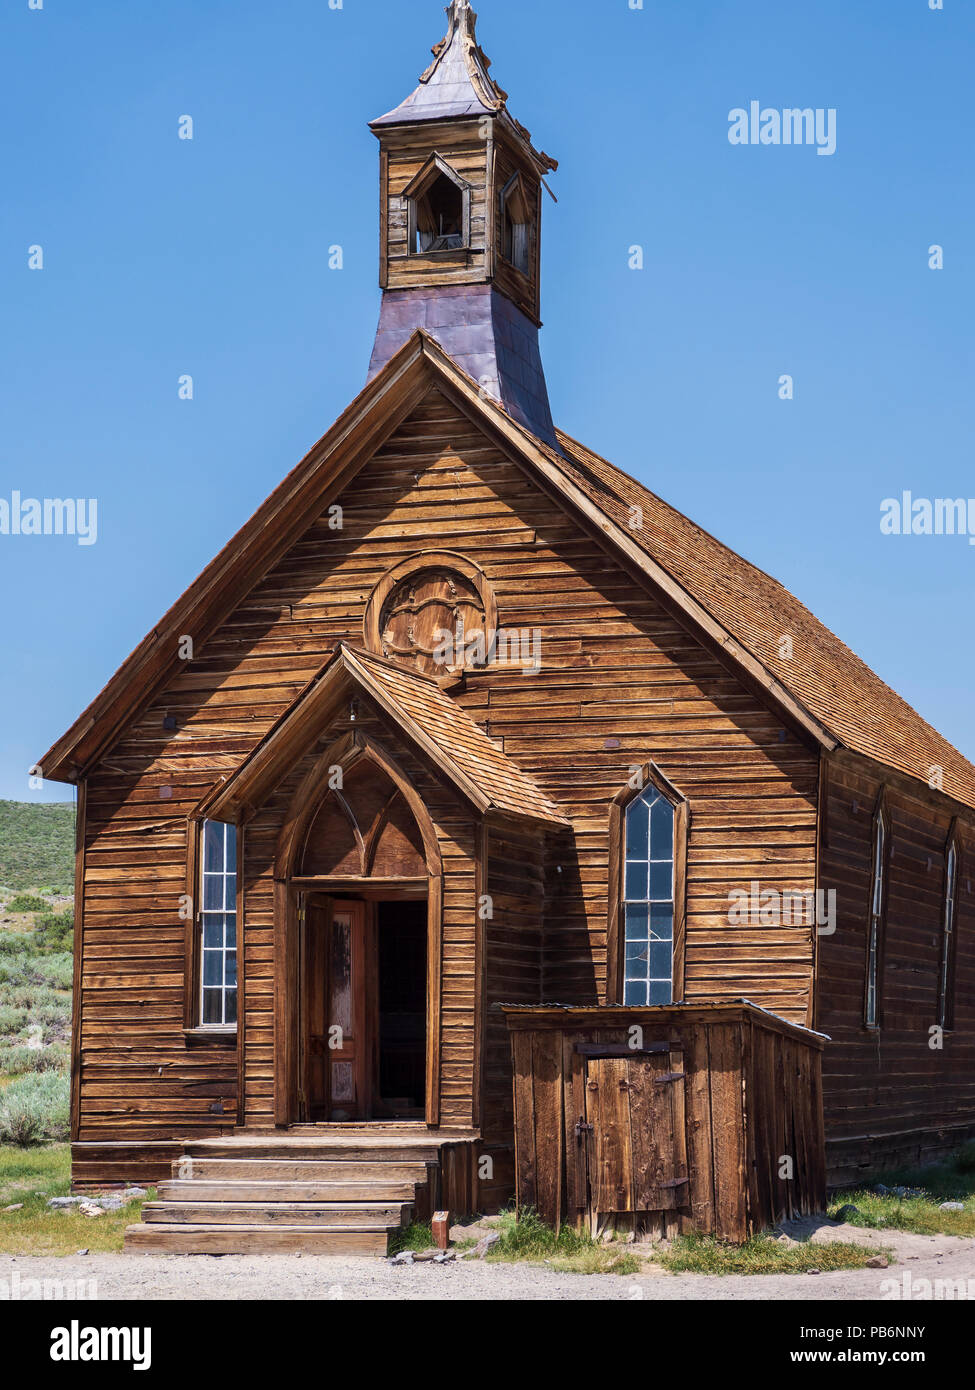 Methodist Church, Bodie ghost town, Bodie State Historic Park, California. - Stock Image